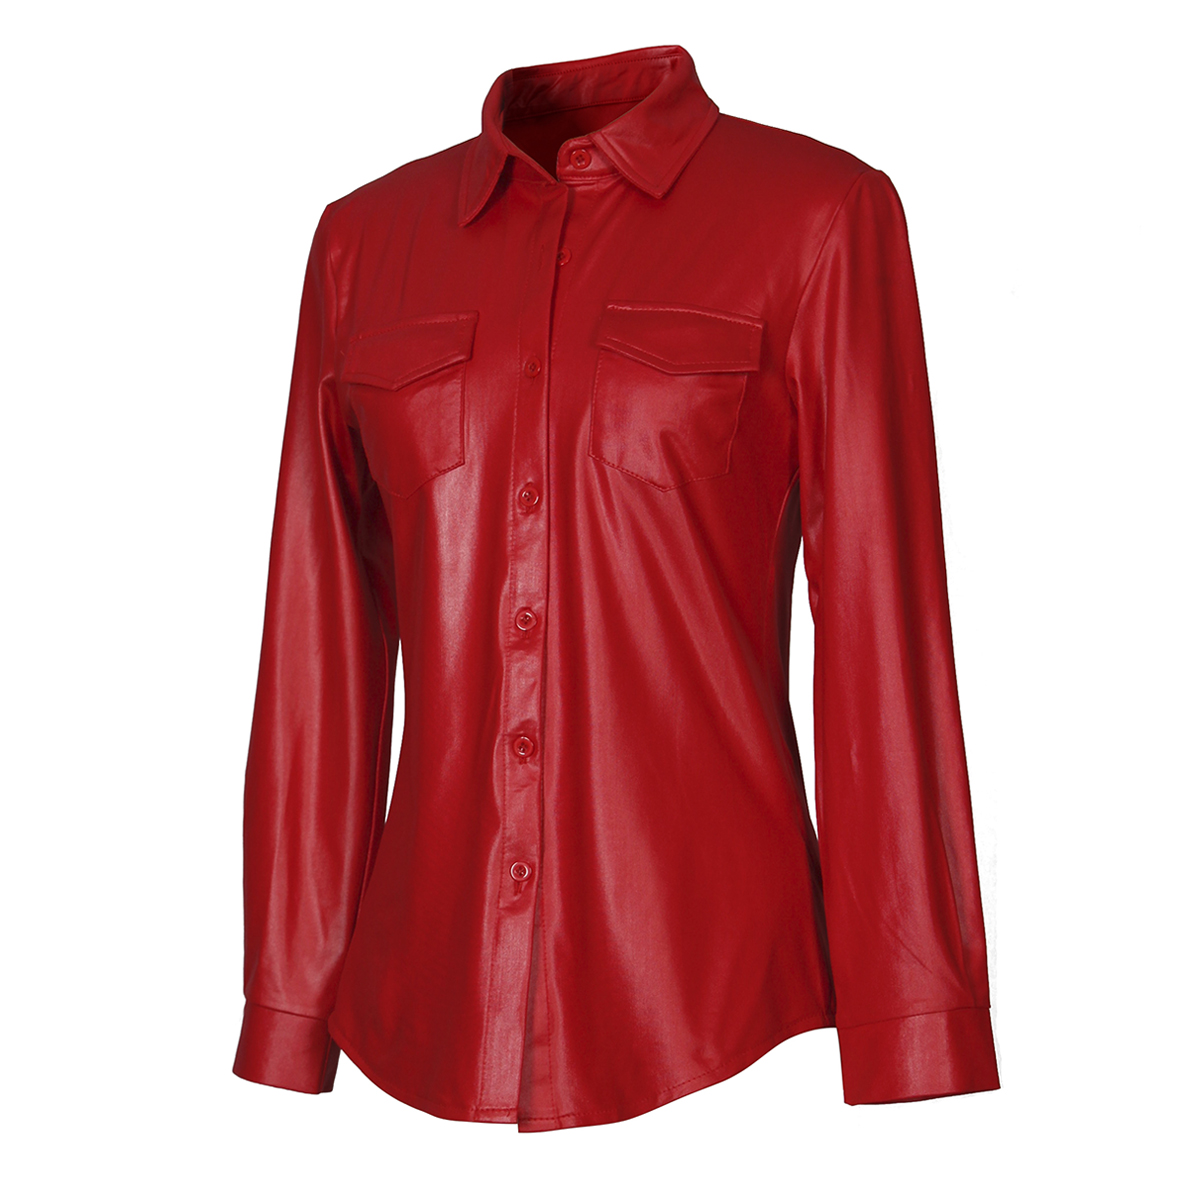 Hot Selling European And American-Style Nightclub Ladies Sexy WOMEN'S PU Leather Long-Sleeve Shirt